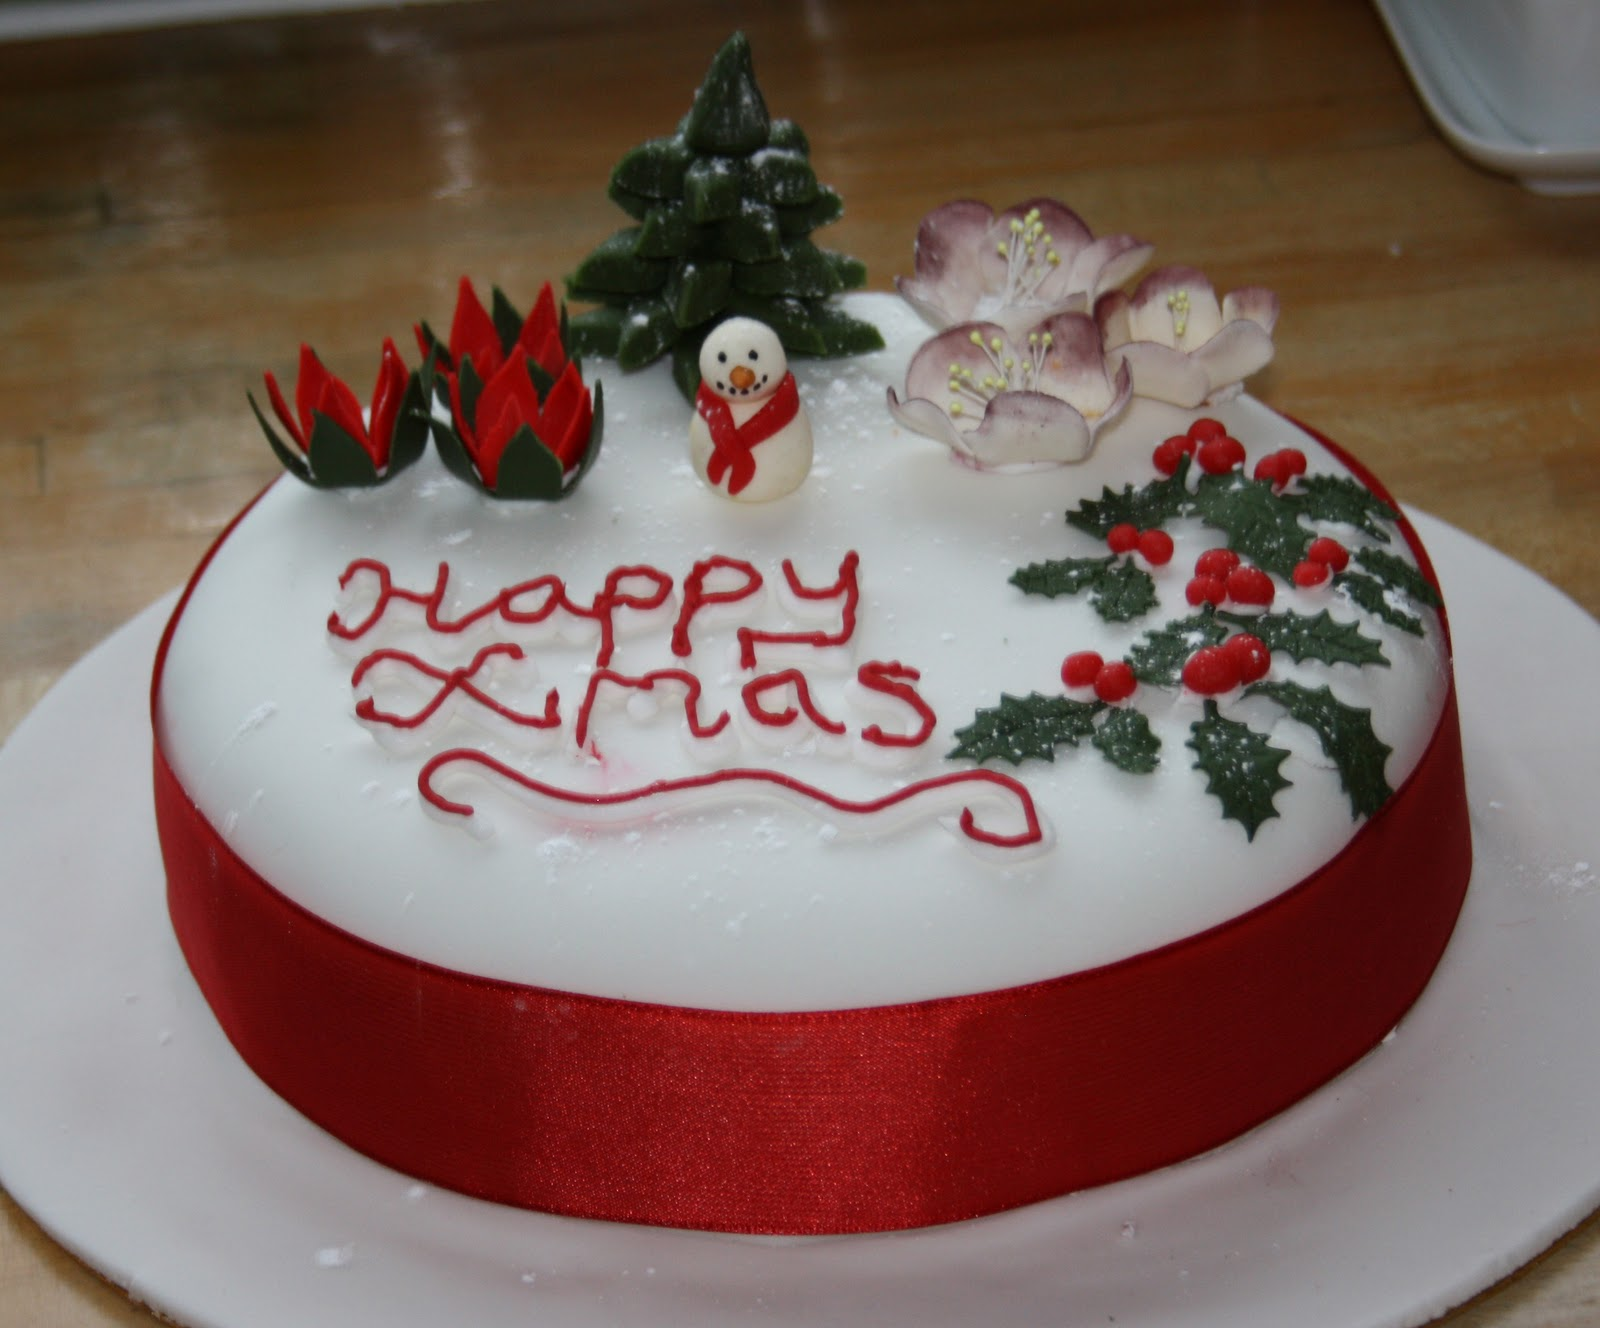 Christmas Cake Decoration Icing : Decorating the Christmas Cake Bex in Sugarland